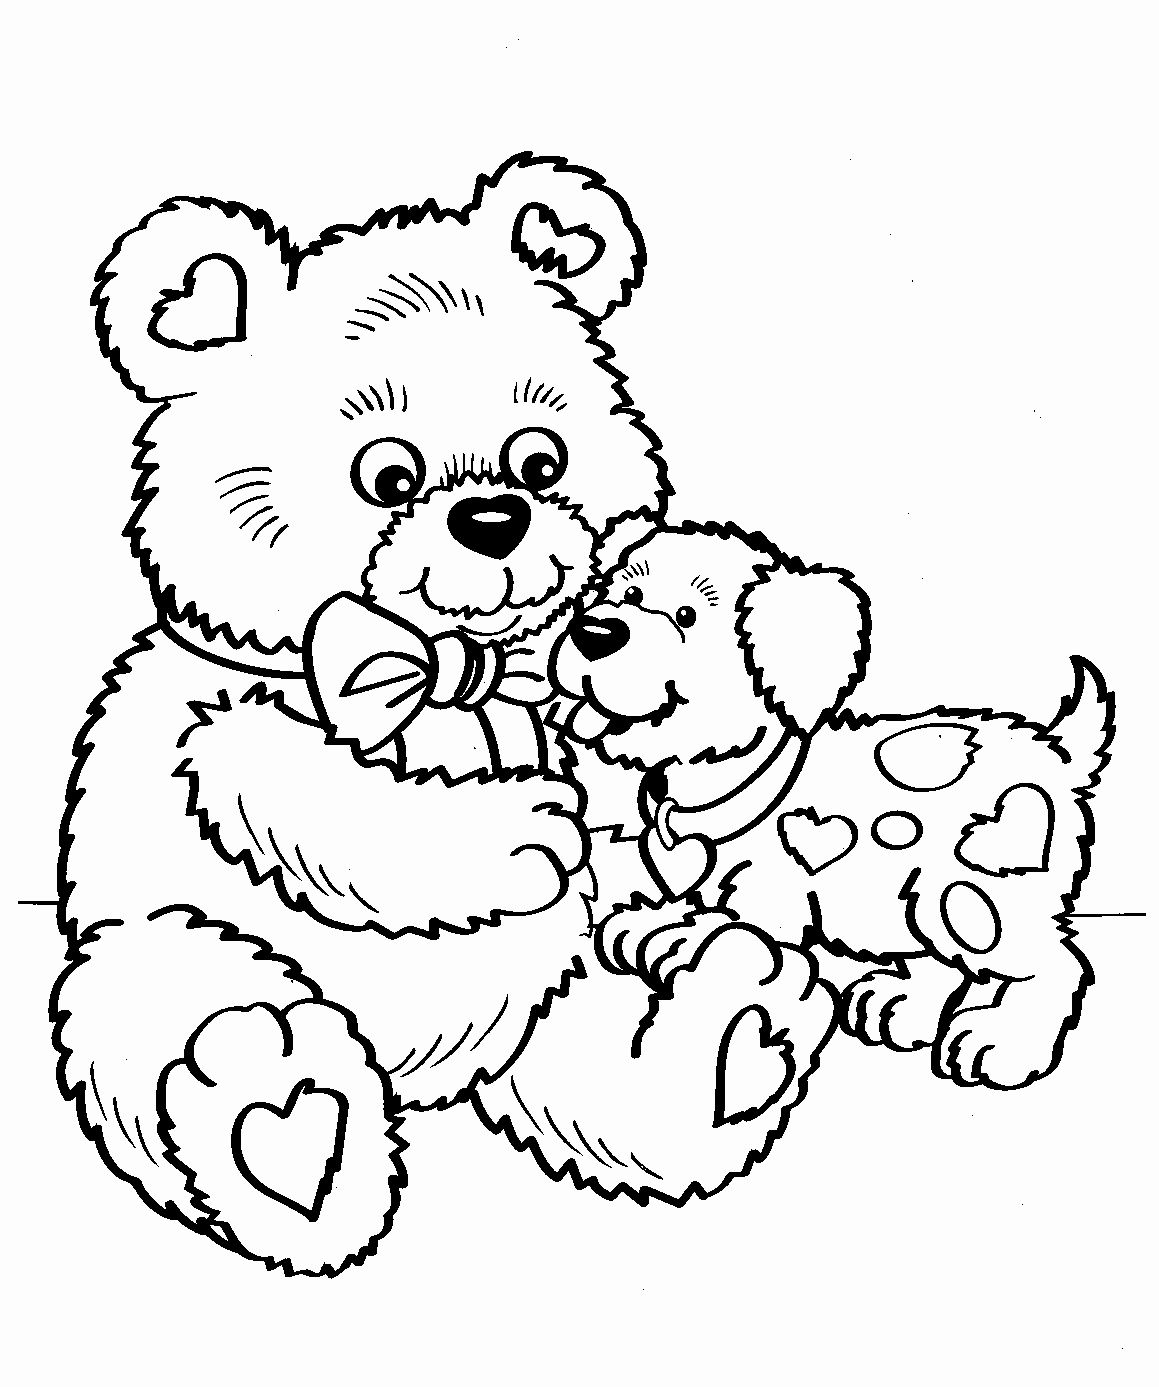 February Coloring Pages Best Coloring Pages For Kids Valentine Coloring Sheets Printable Valentines Coloring Pages Valentines Day Coloring Page